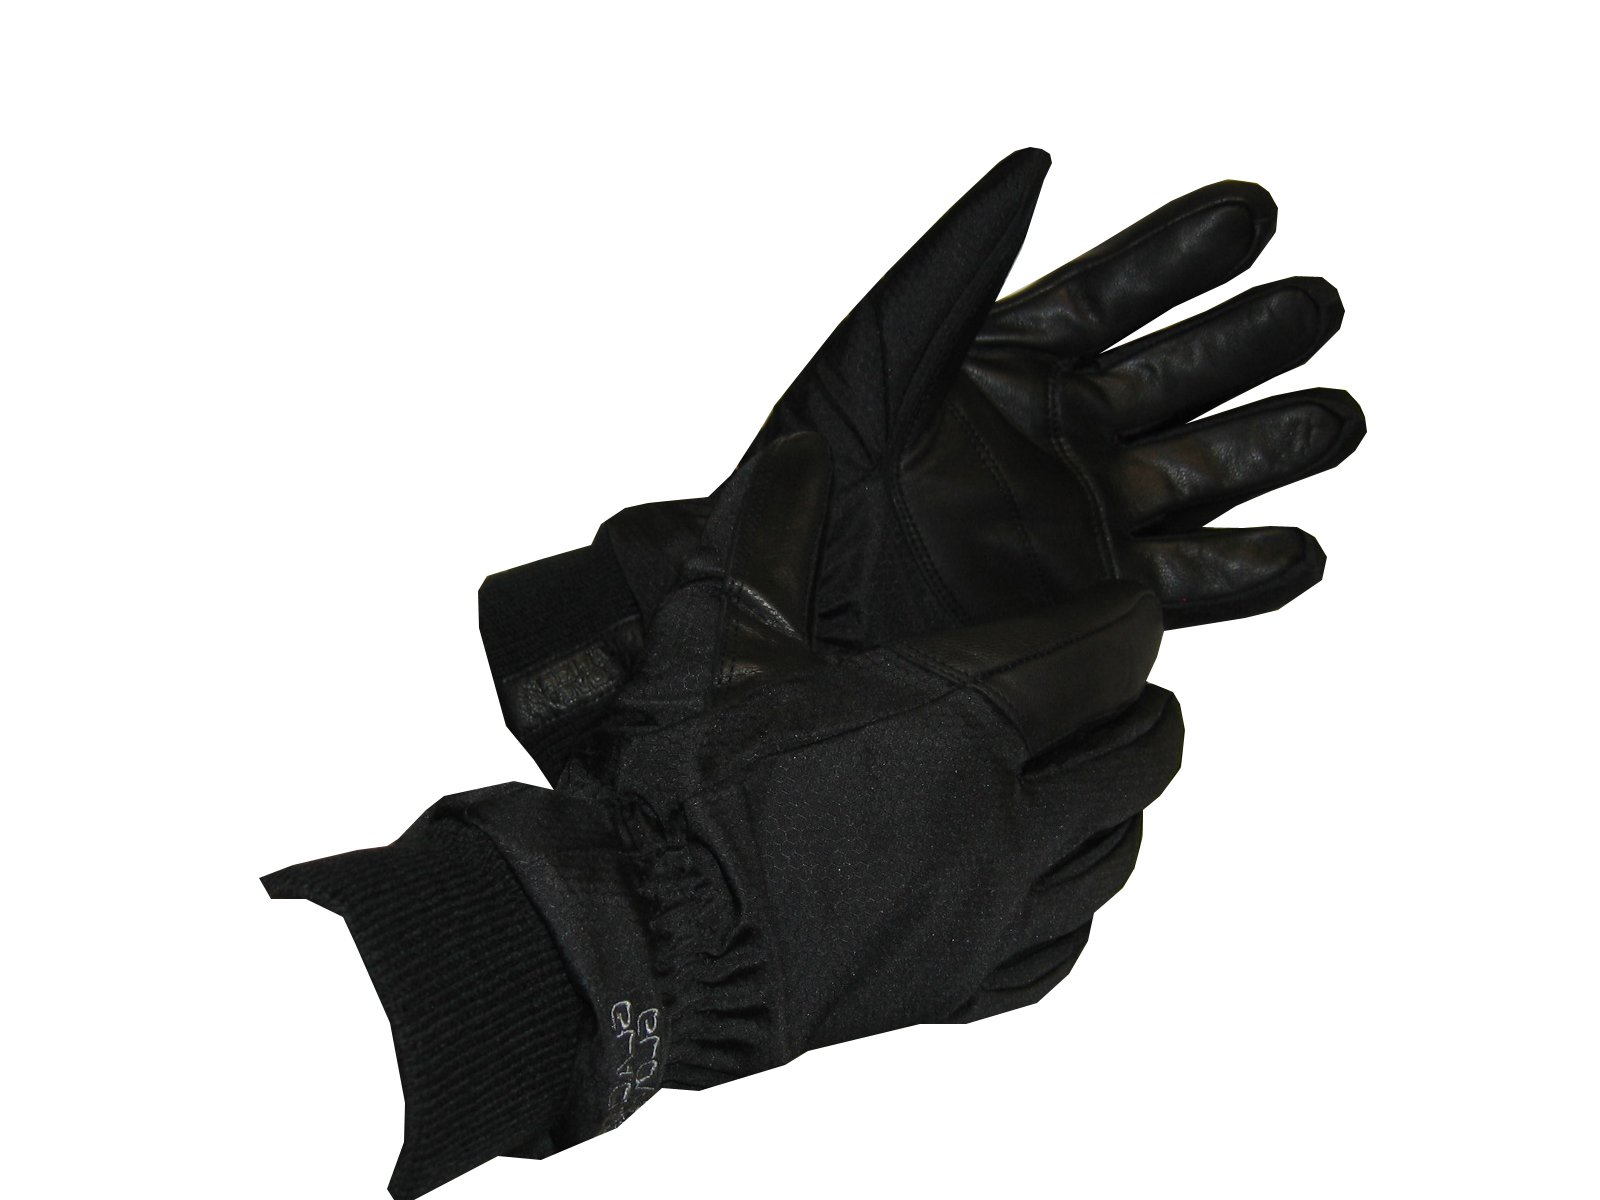 Glacier Glove Alaska Waterproof Insulated Glove 775BK-M by Glacier Glove